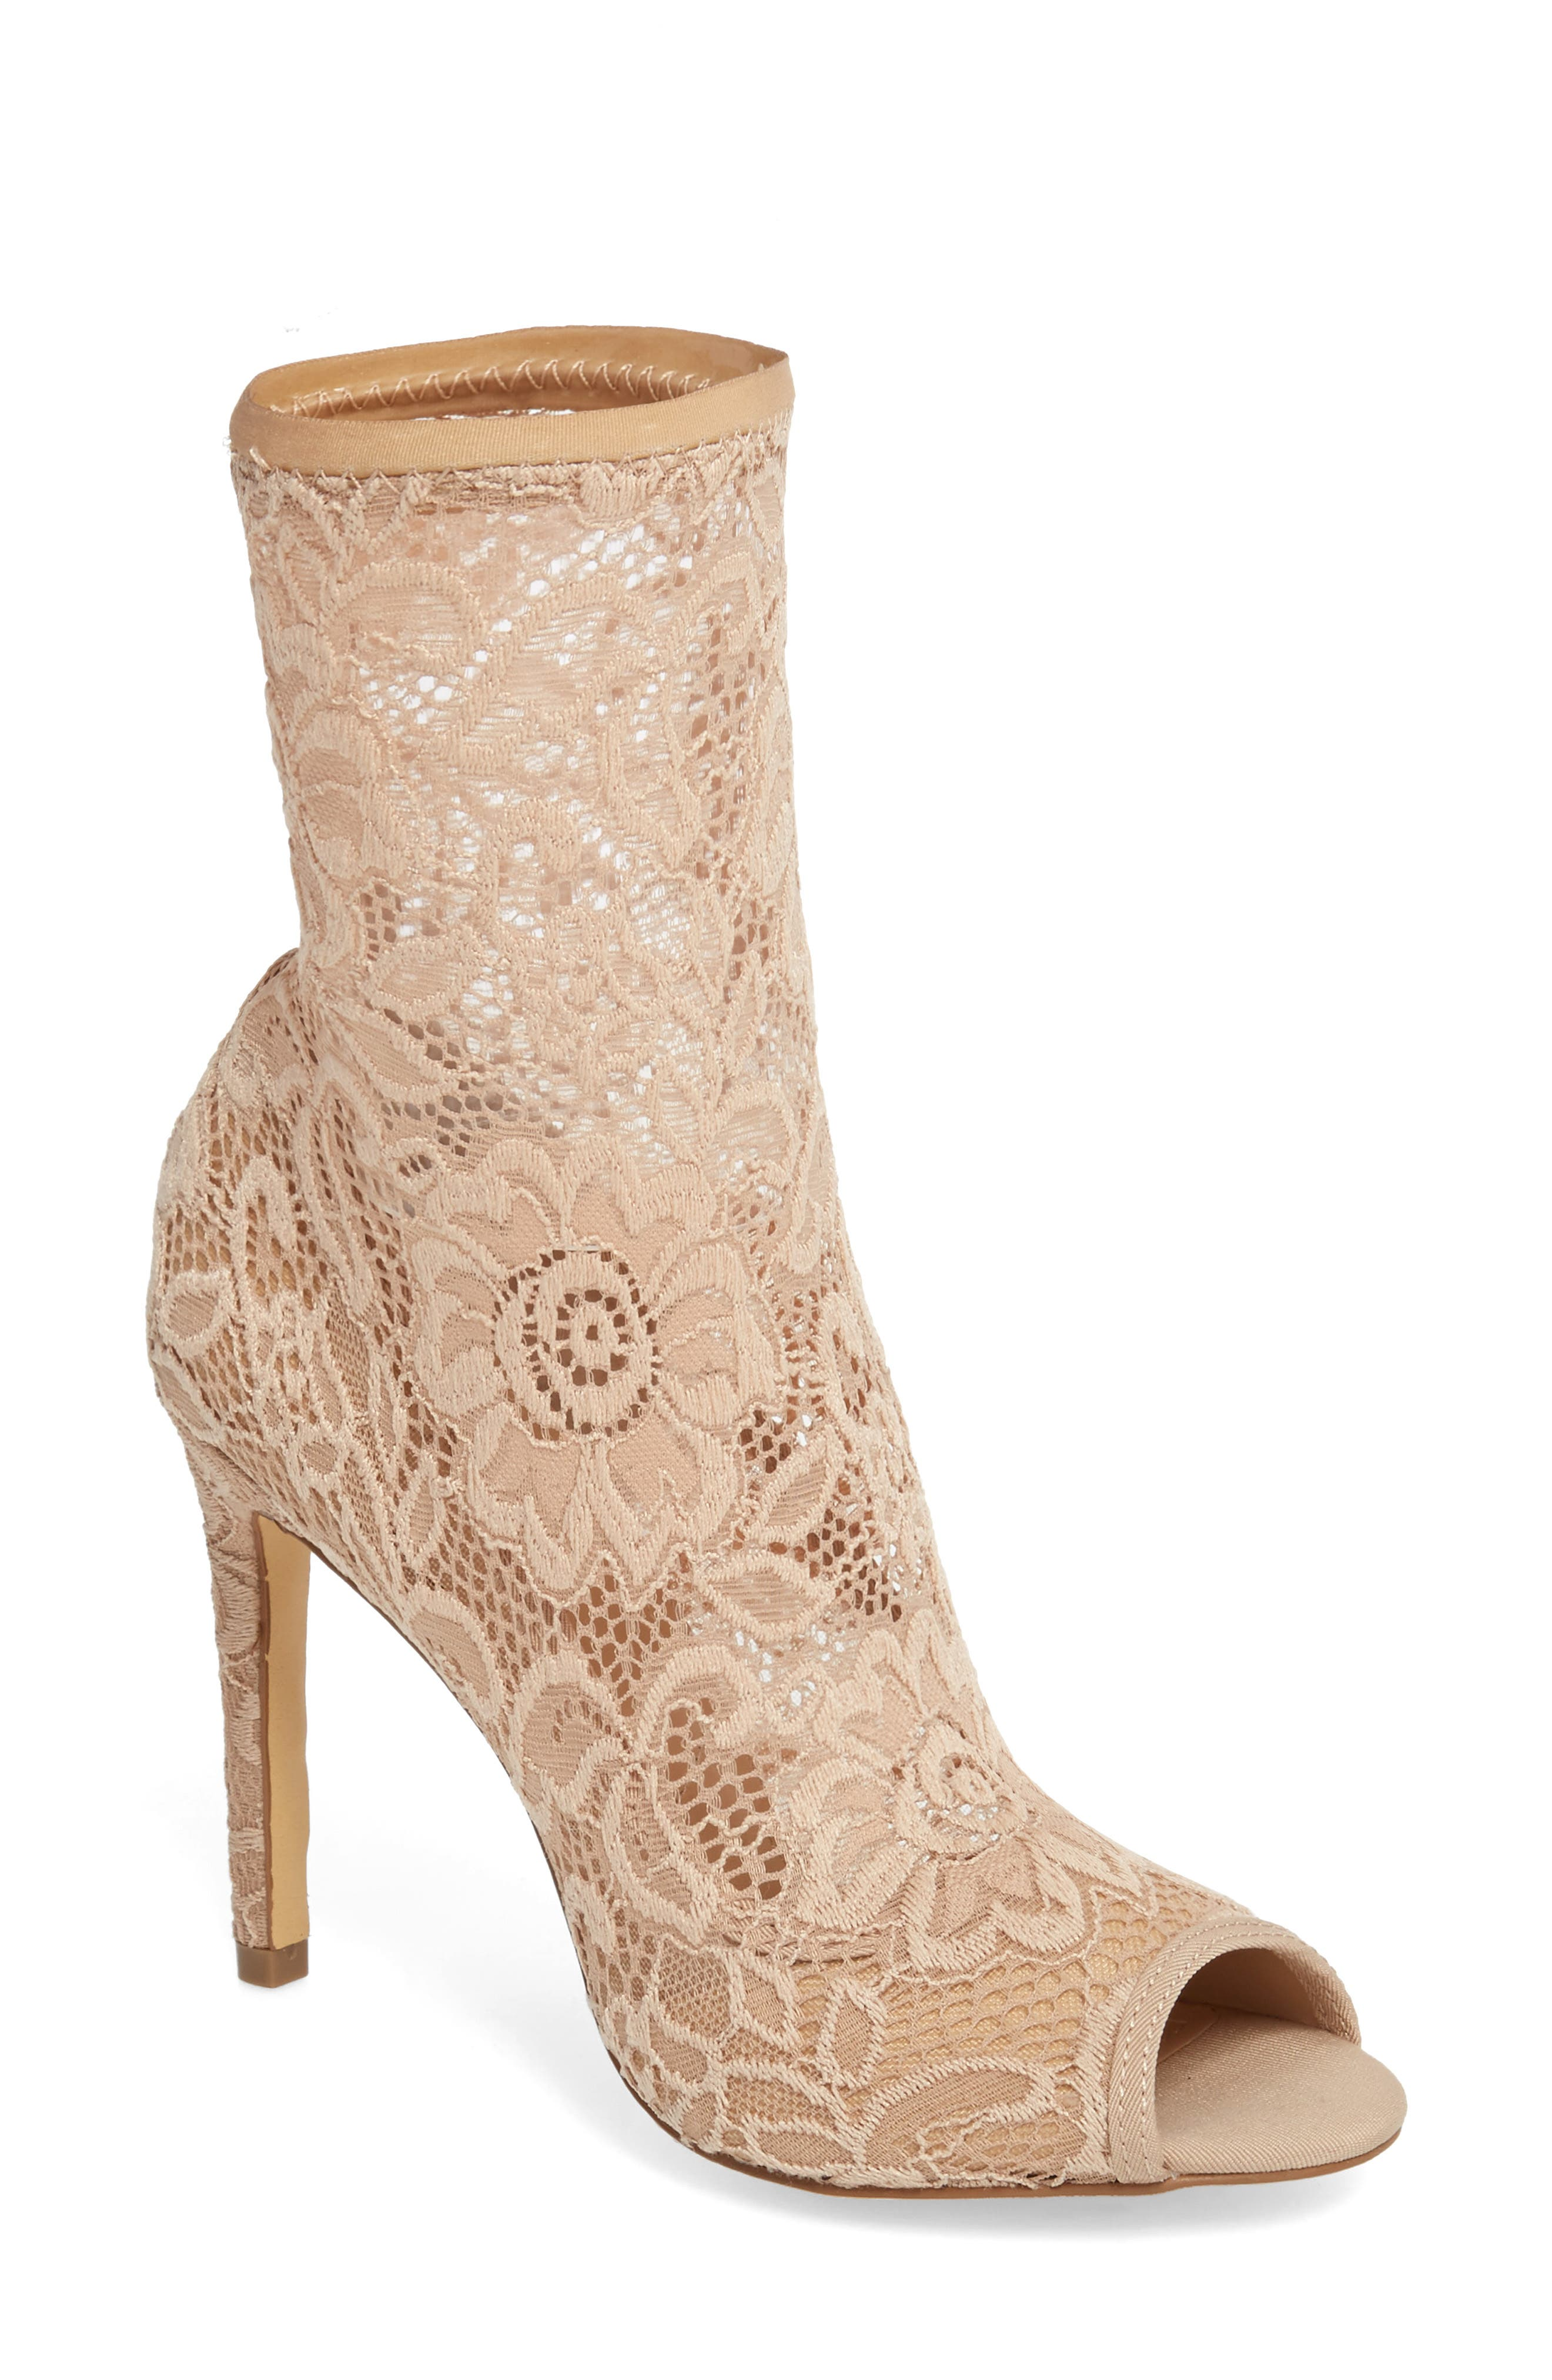 CHARLES BY CHARLES DAVID, Imaginary Lace Sock Bootie, Main thumbnail 1, color, NUDE FABRIC